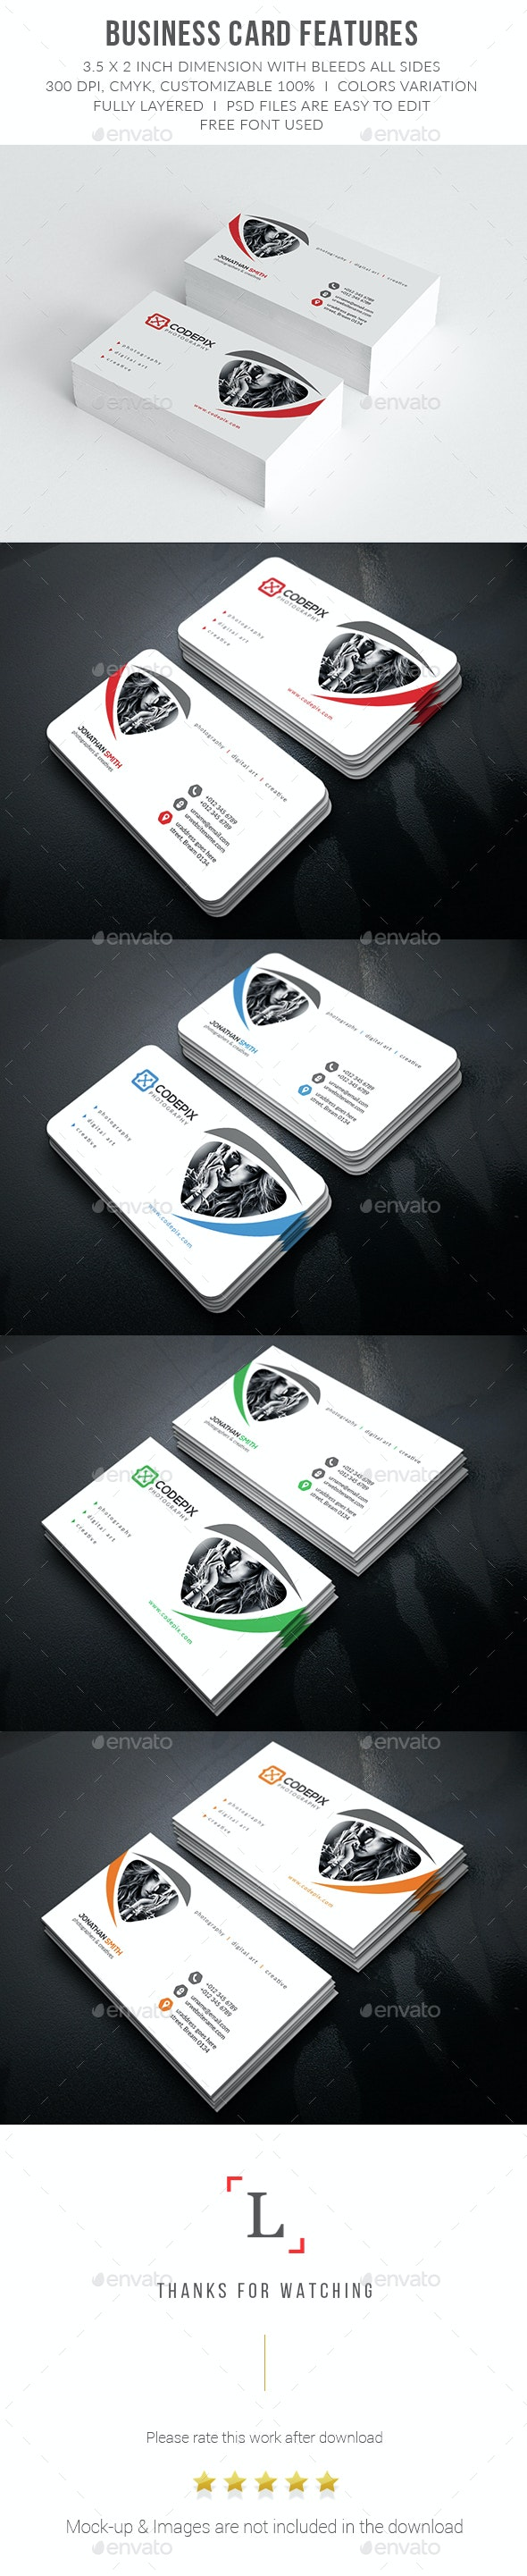 Clean Photography Business Card - Business Cards Print Templates